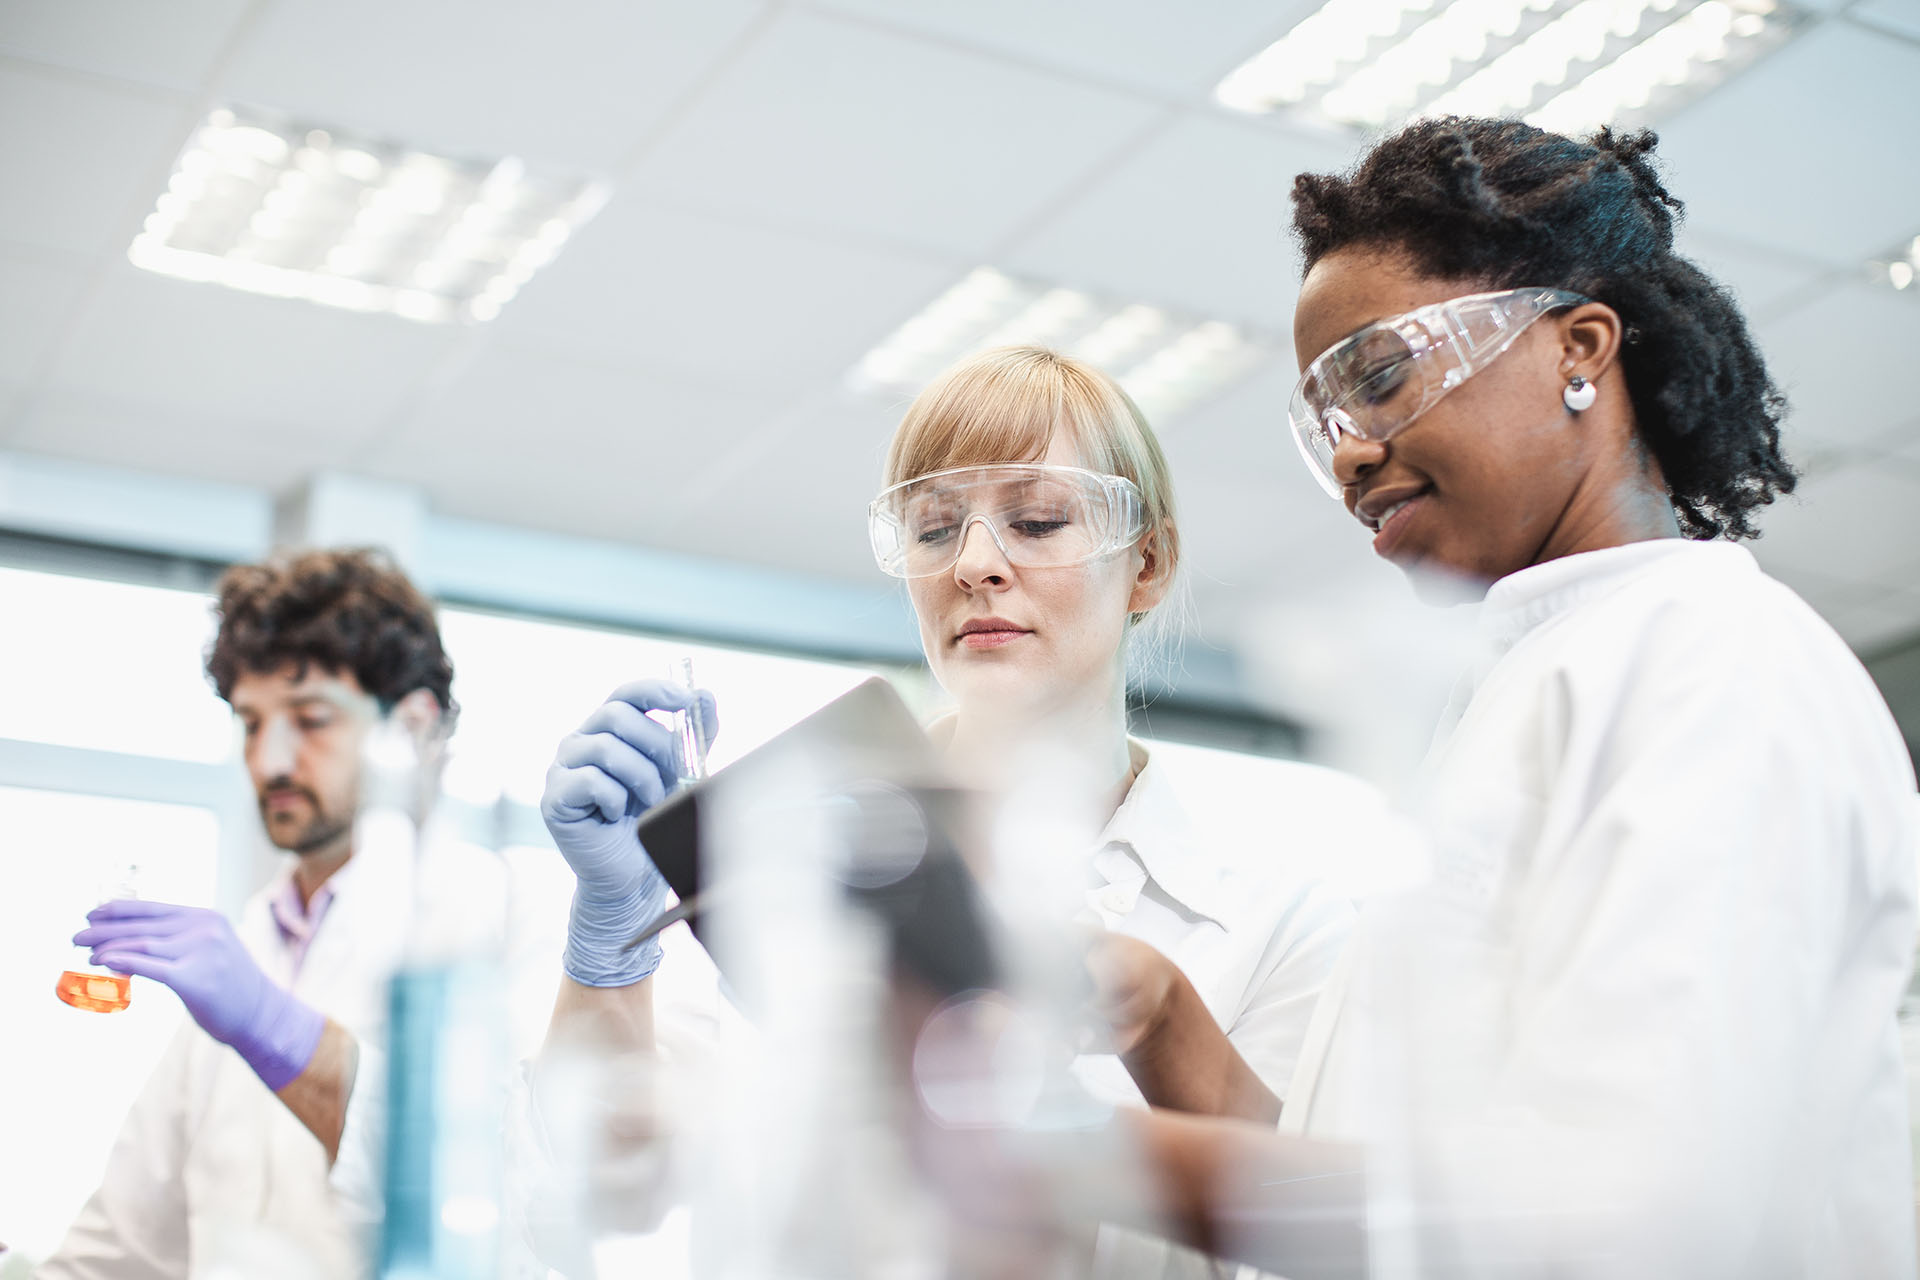 Three students in a science laboratory